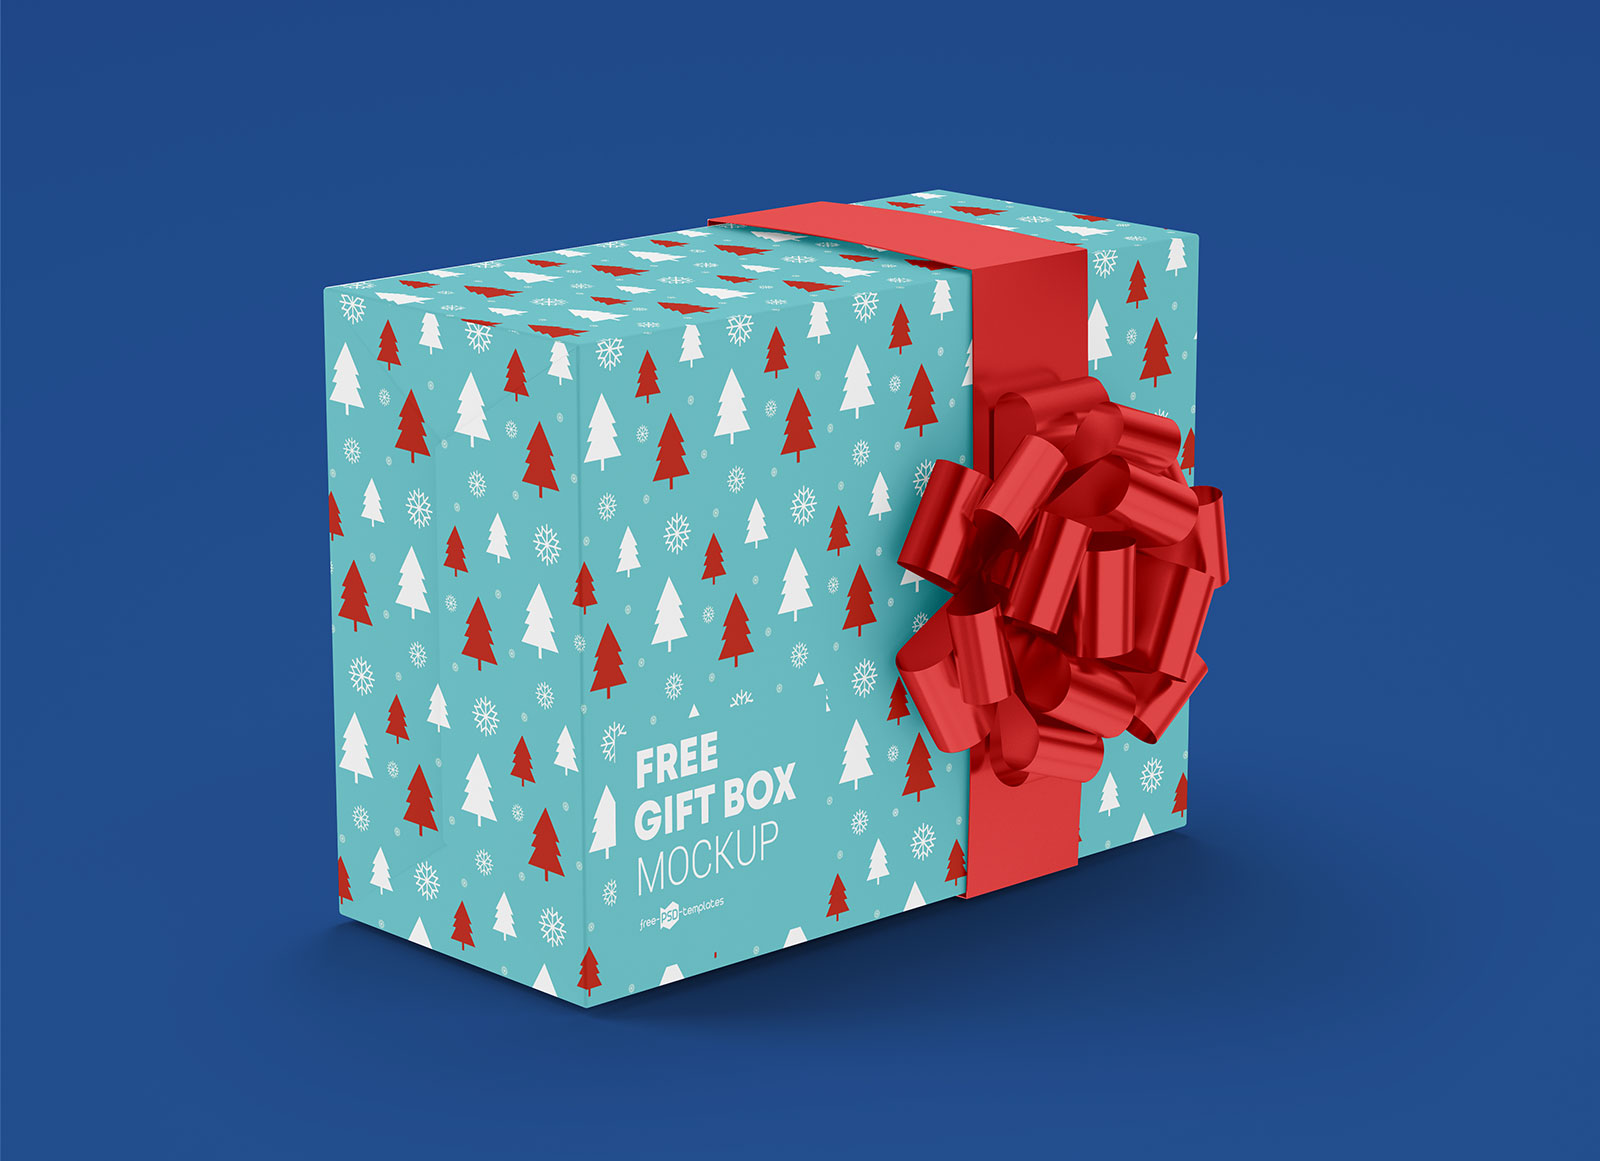 Free-Gift-Box-Packaging-Mockup-PSD-Set-2